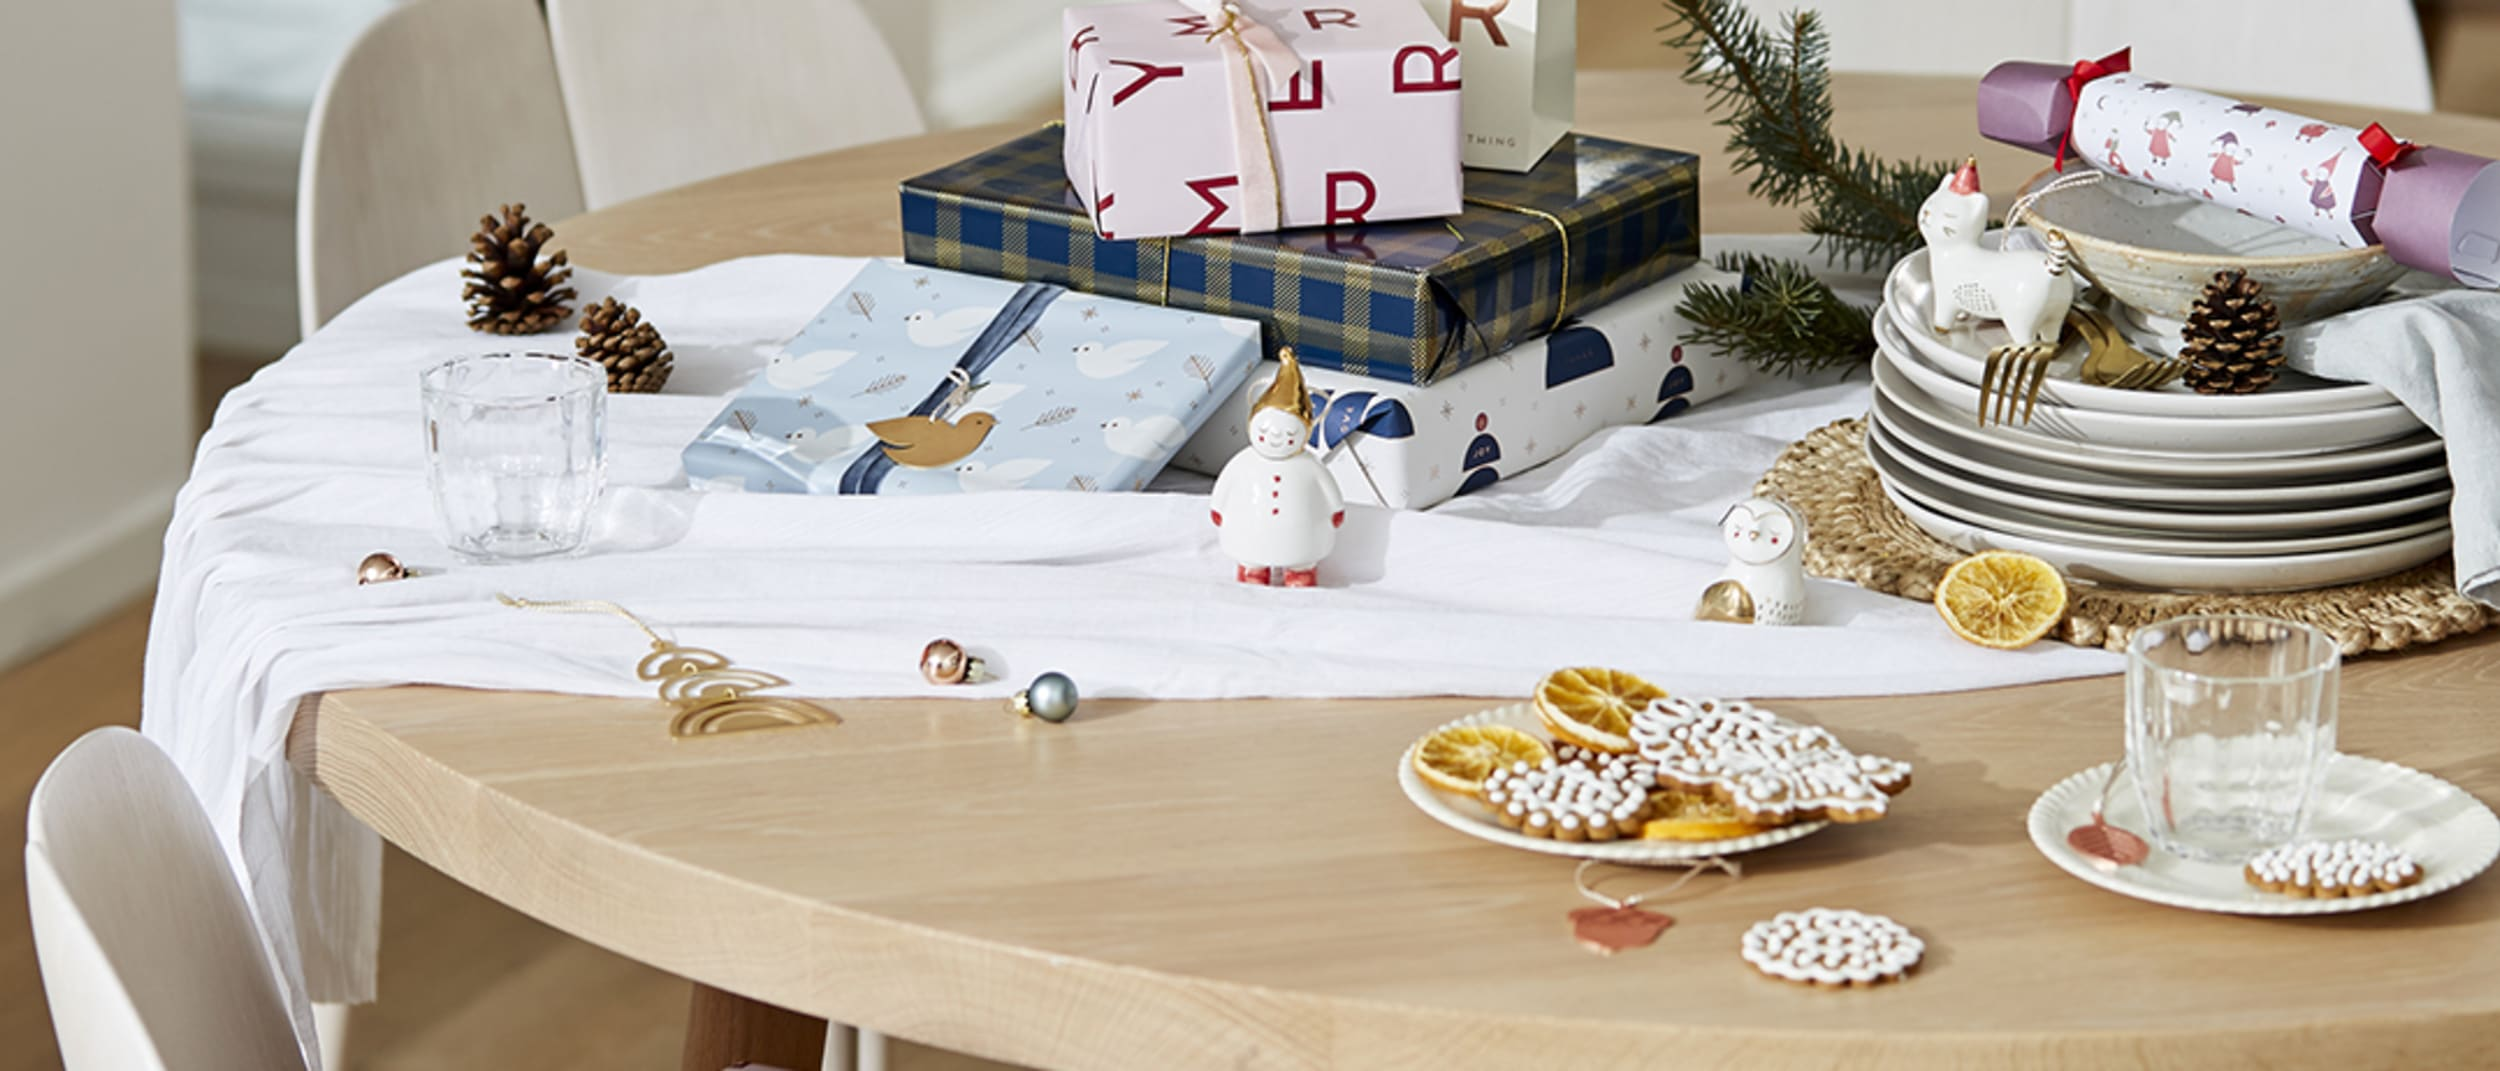 kikki.K: Giving good this Christmas